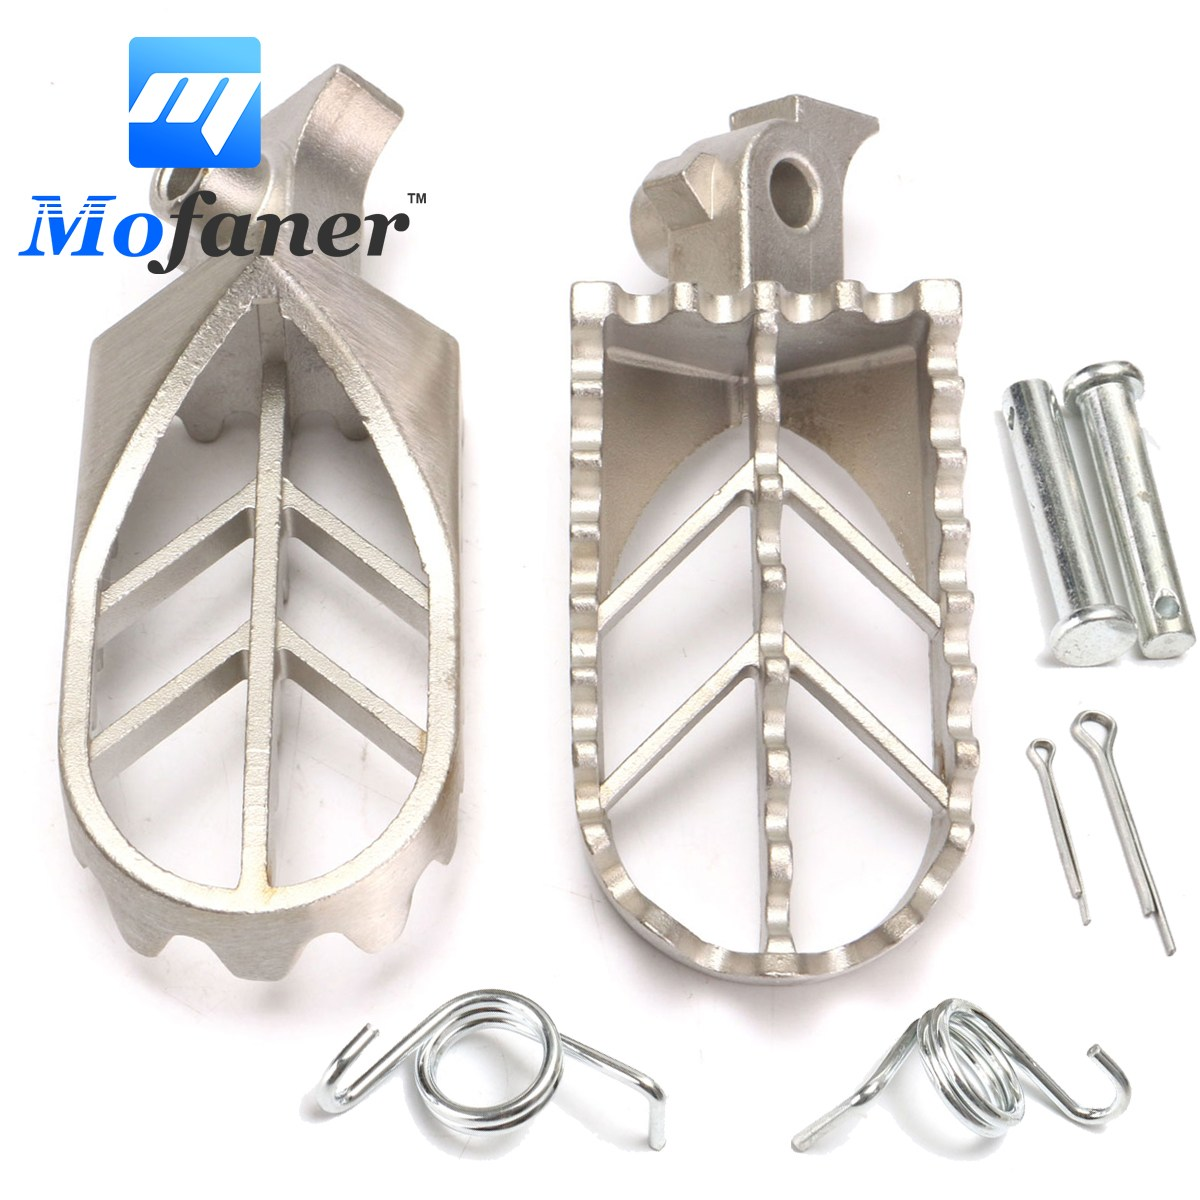 1 Set Stainless Steel Motorcycle Foot Peg Rest Pedal For Yamaha YZ85 YZ125 YZ250 YZ450F WR250F